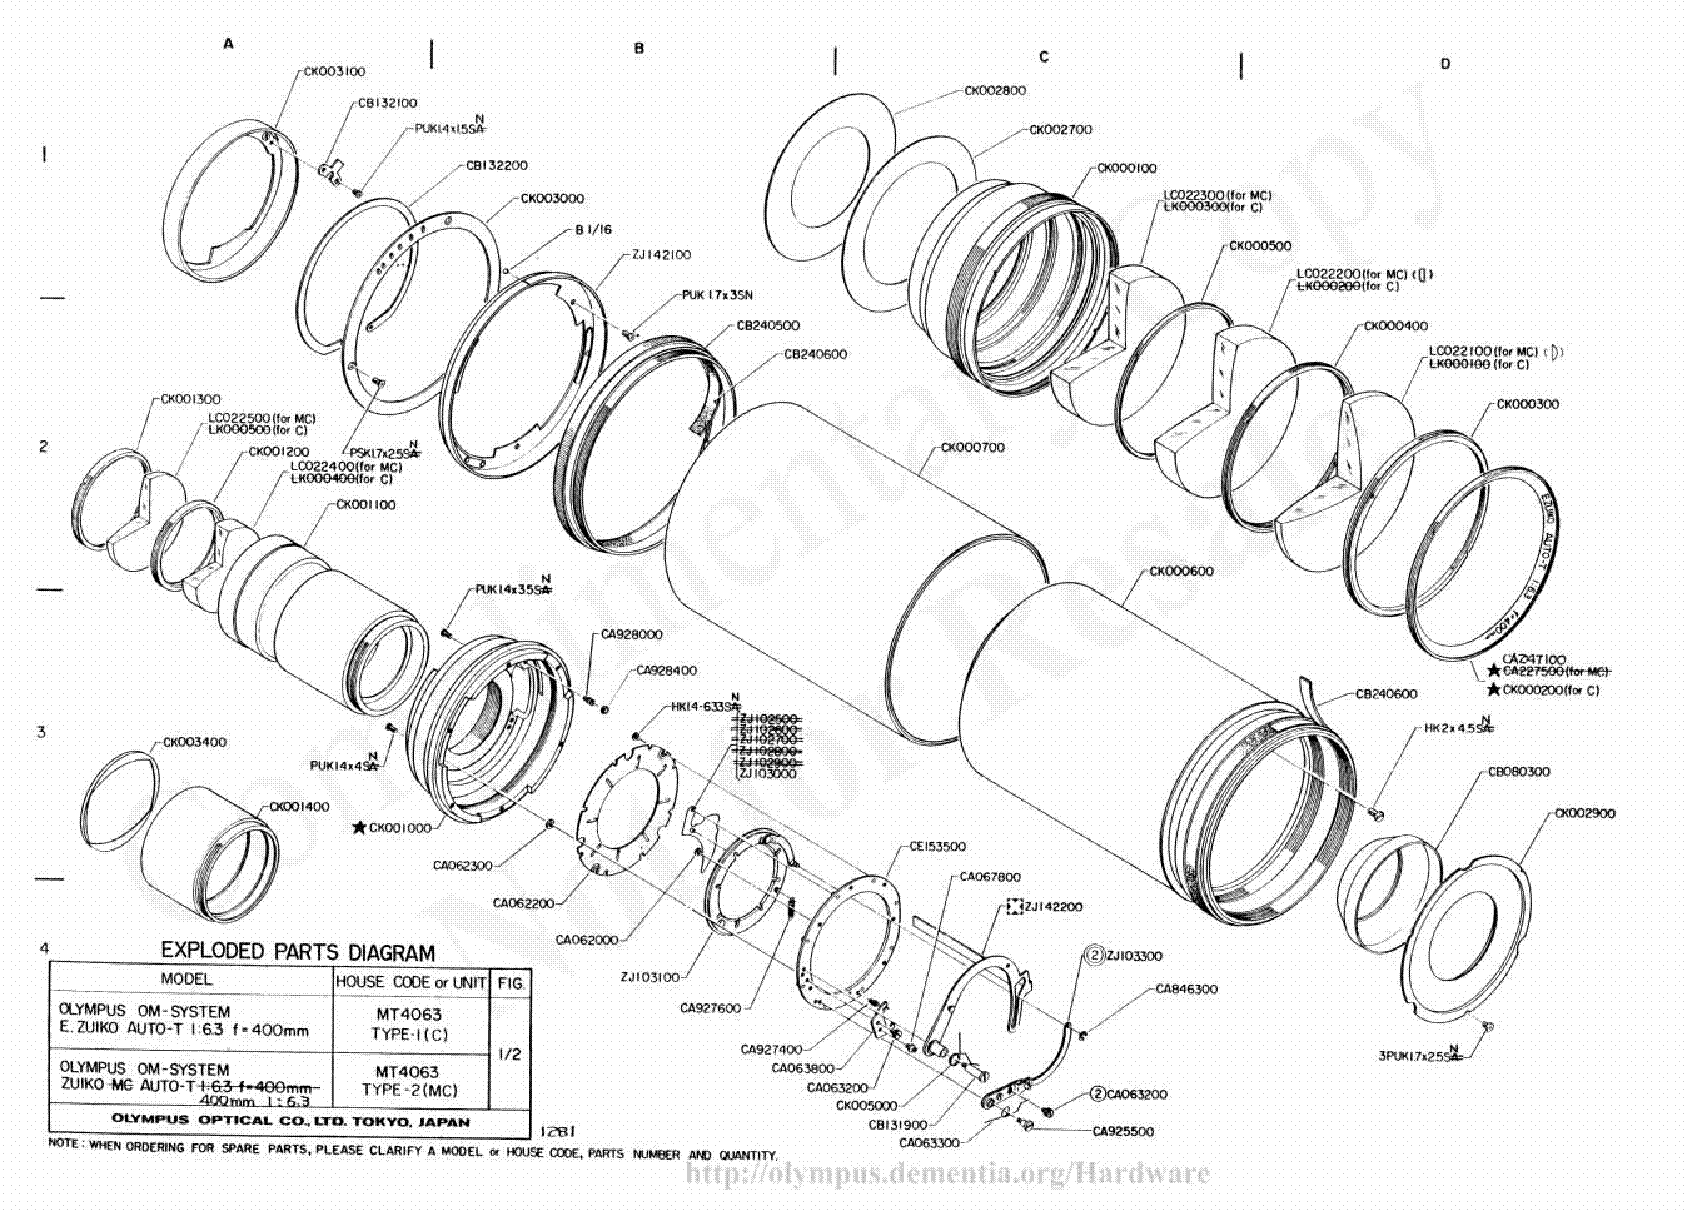 OLYMPUS 400MM F6.3 EXPLODED PARTS DIAGRAM Service Manual